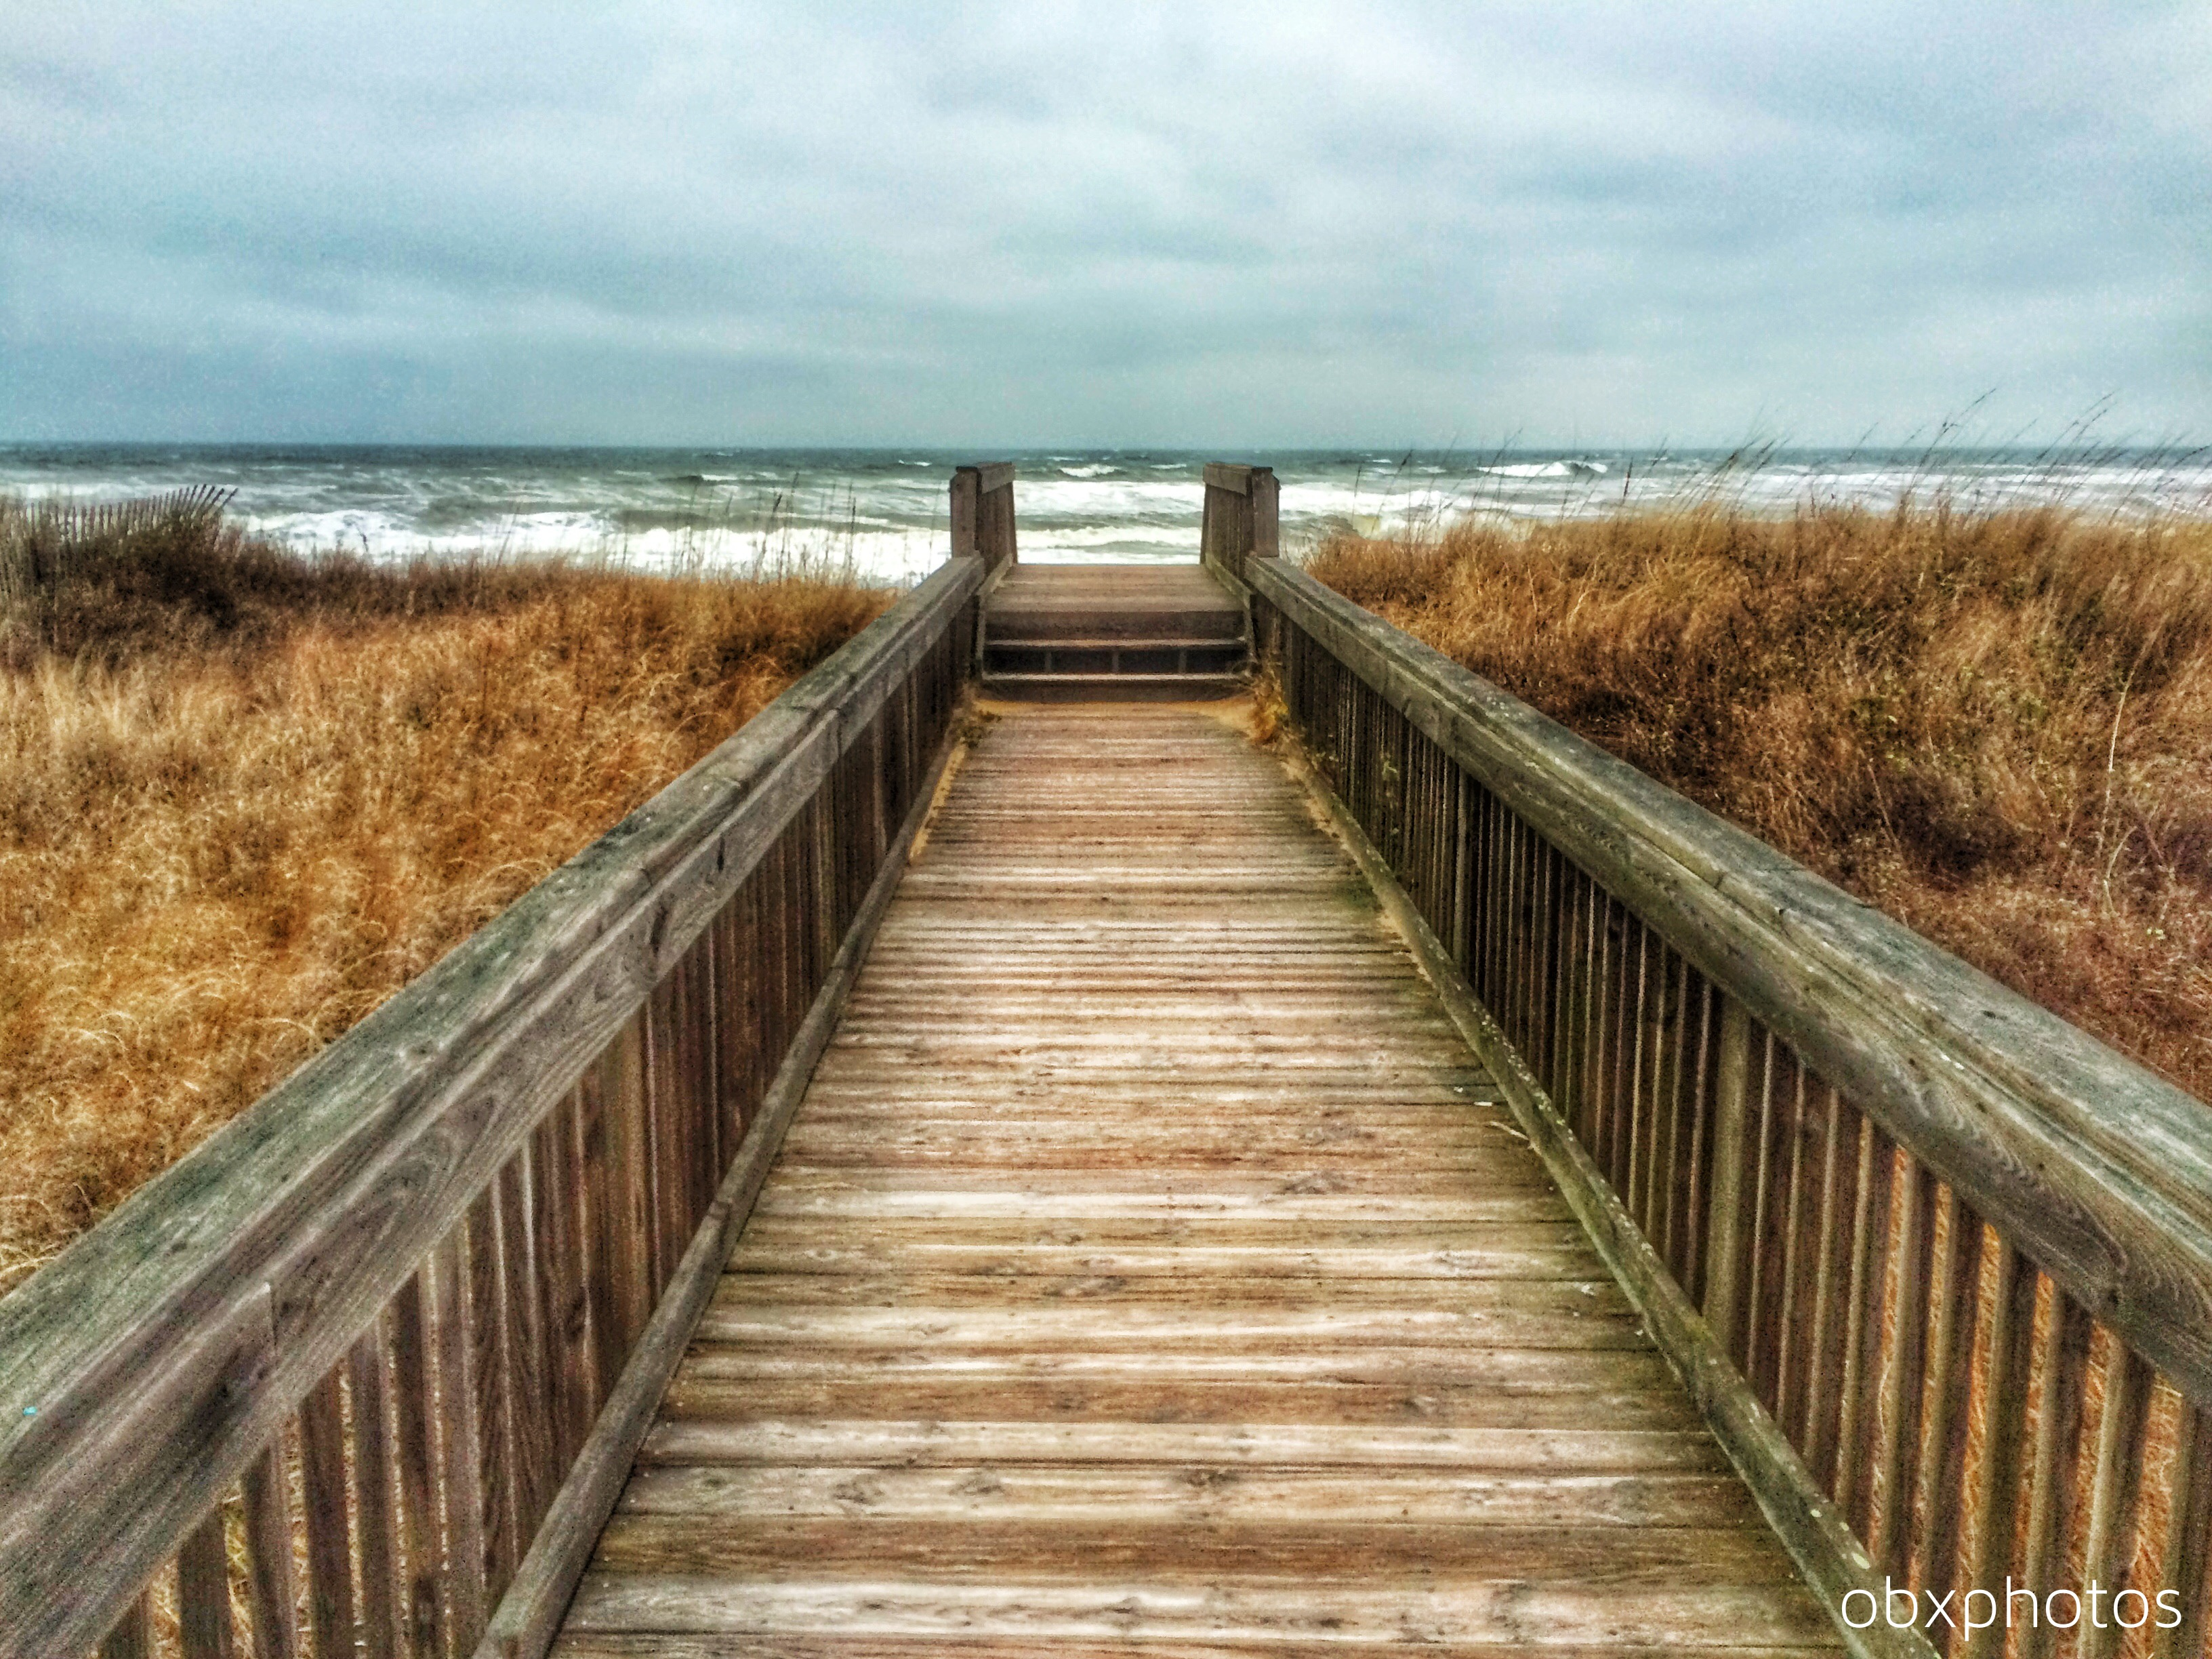 cold-windy-morning-outer-banks-nc-january-13-2015